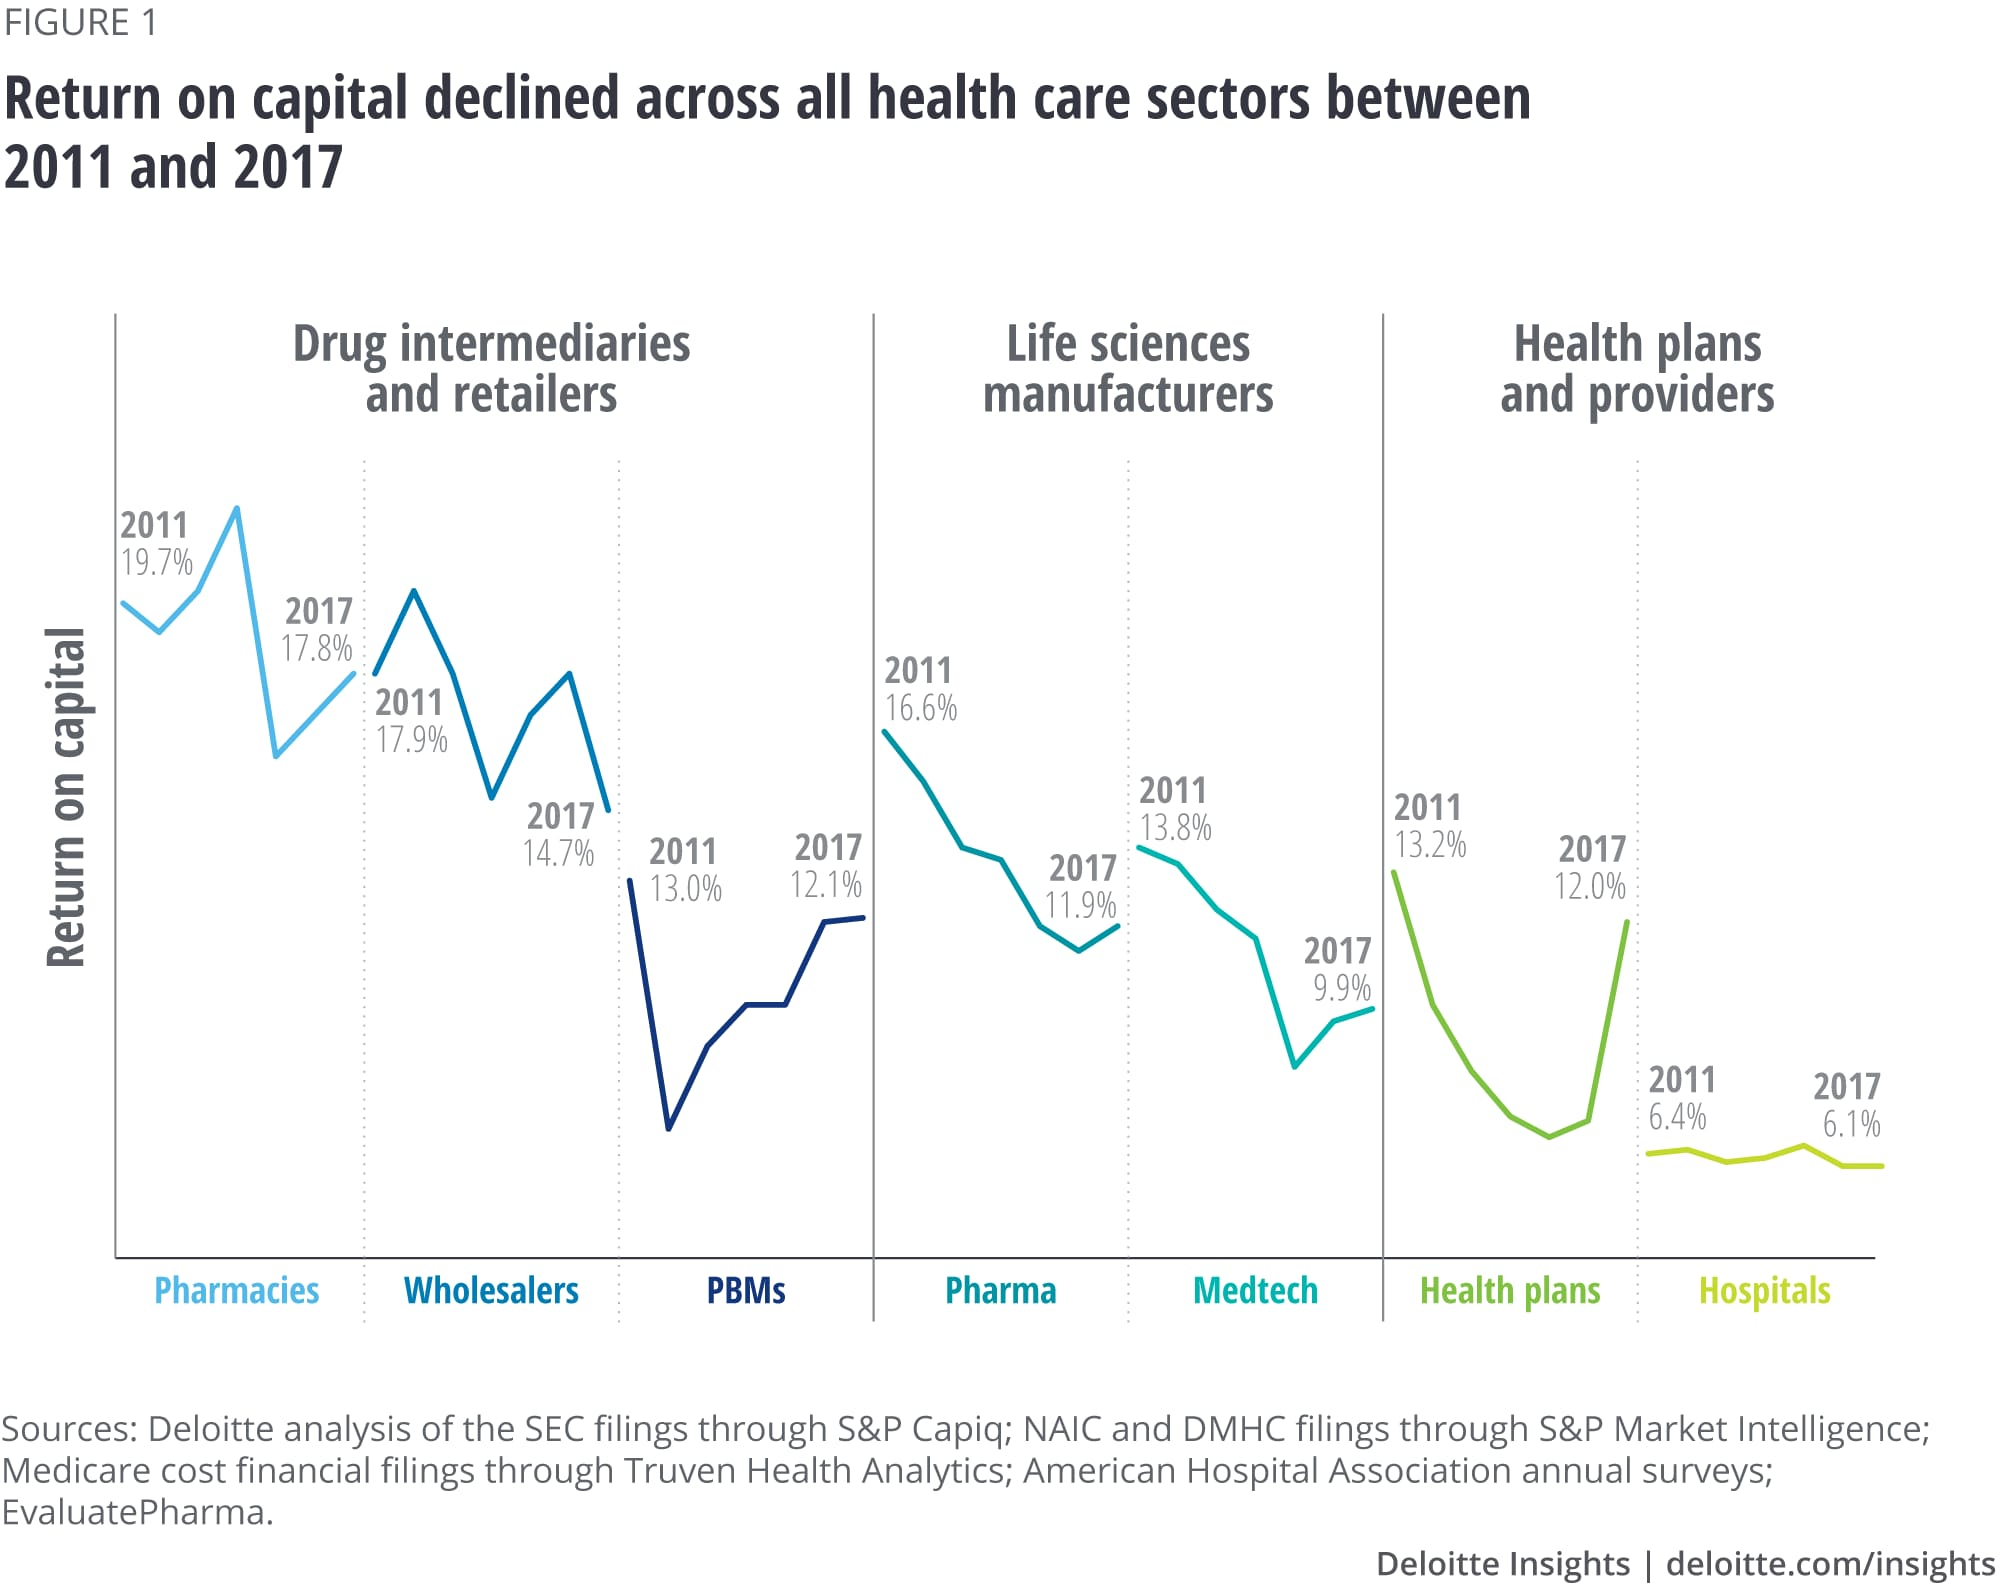 Return on capital declined across all health care sectors between 2011 and 2017